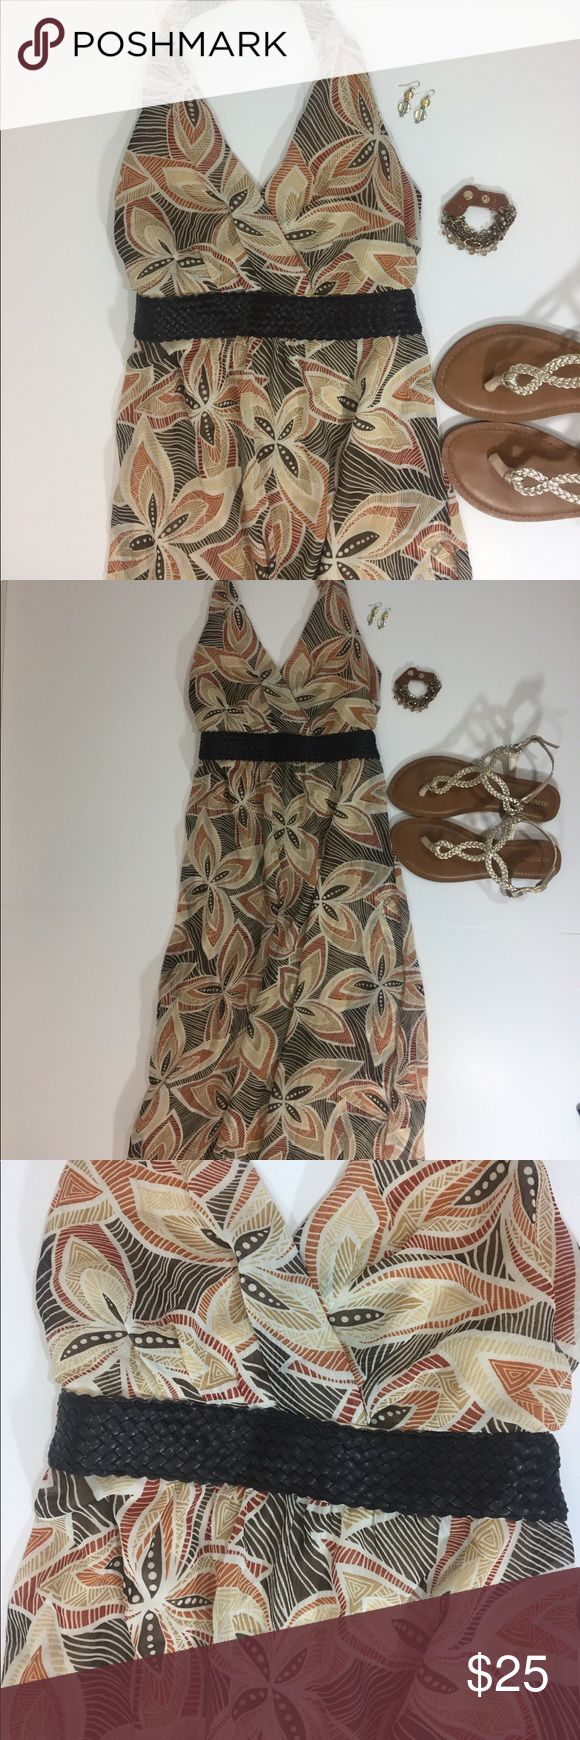 """Maxi Halter Sundress with Leather Waistband Maxi Halter Sundress with Leather Braided Waistband.  Fully Lined, rear zipper, ties at neck and rear waist. Colors: Brown, Beige, Cream, & Copper.  Size: 8.  100% Polyester.  Length: 55"""".  Waist (across front): 13"""".  Chest (armpit to armpit): 16"""". Rabbit Rabbit Rabbit Designs Dresses Maxi"""